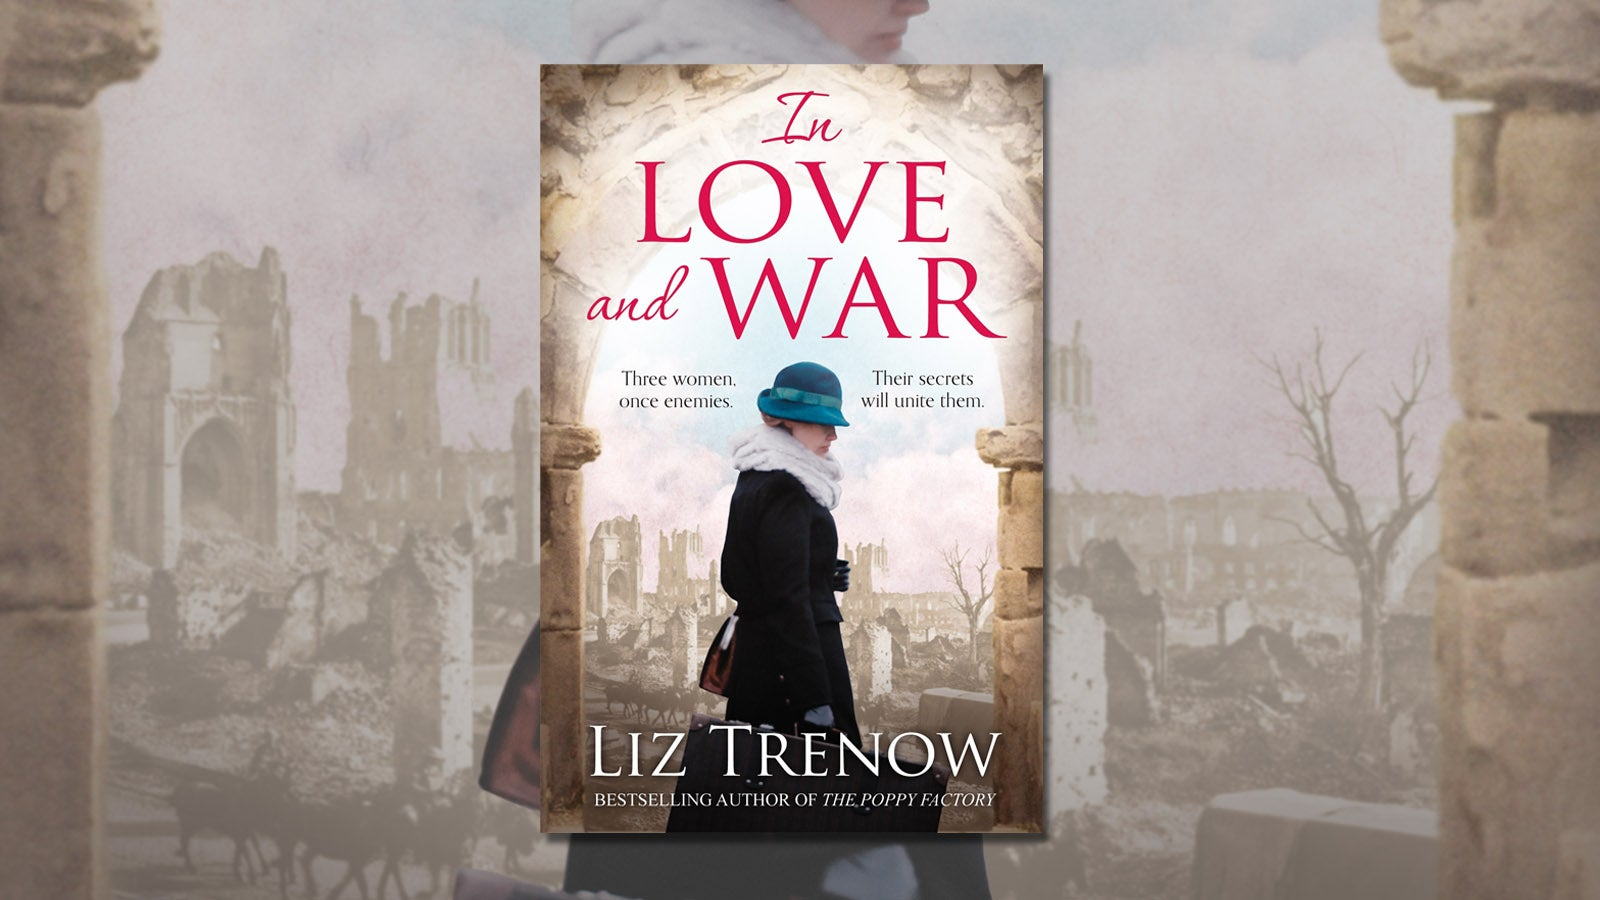 Liz Trenow's In Love and War set against a backdrop of  a war-city in World War 1